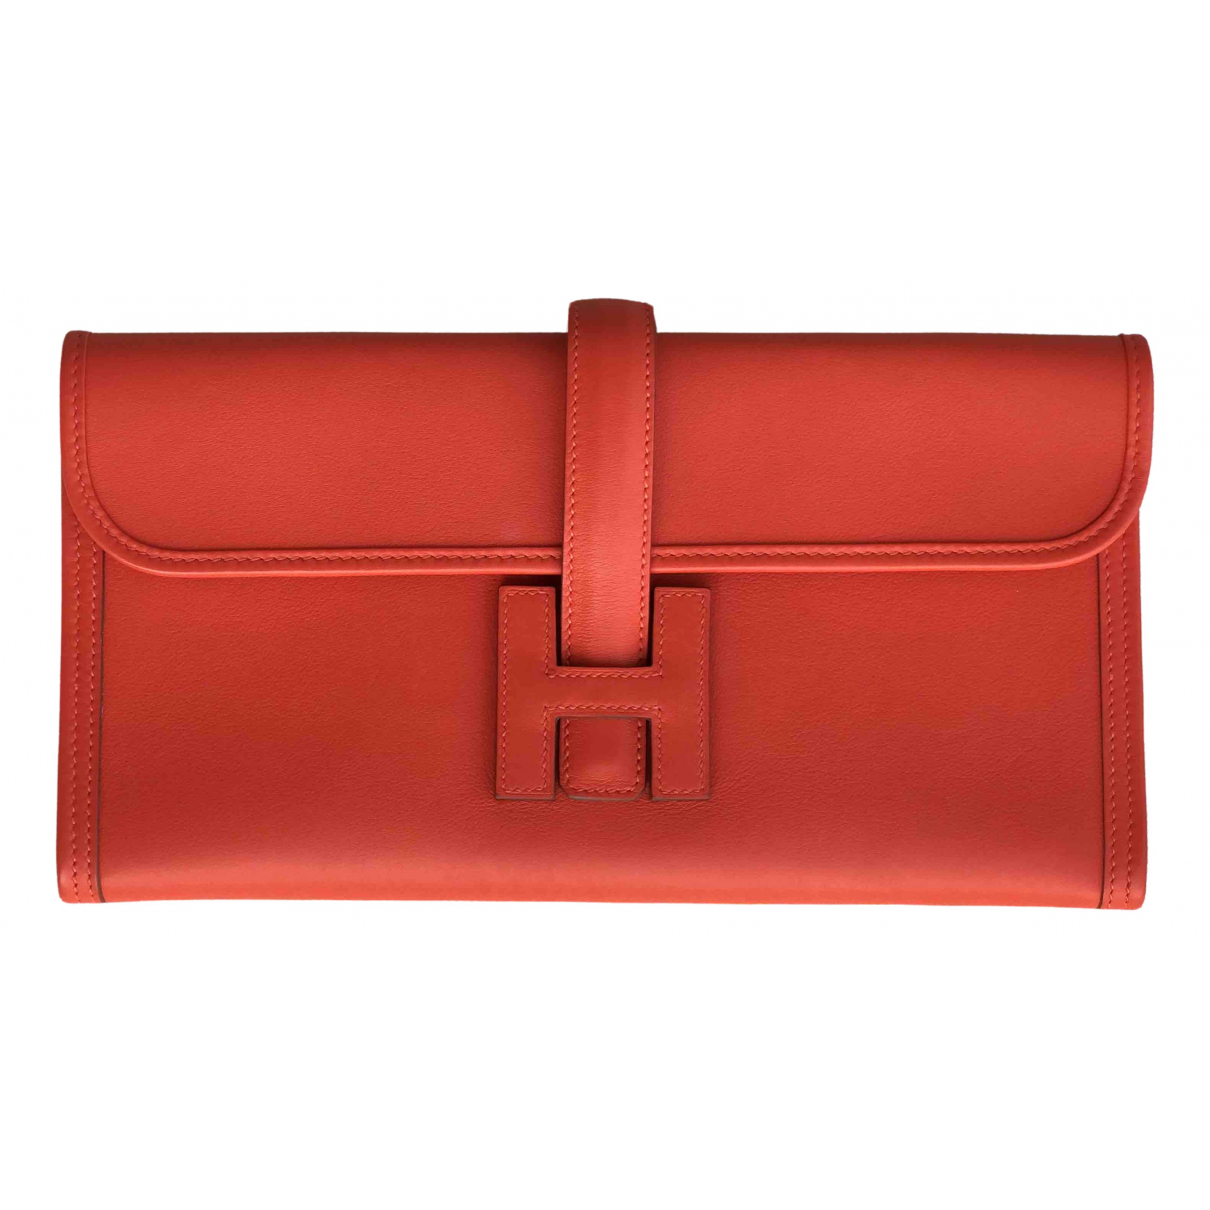 Hermès Jige Orange Leather Clutch bag for Women \N